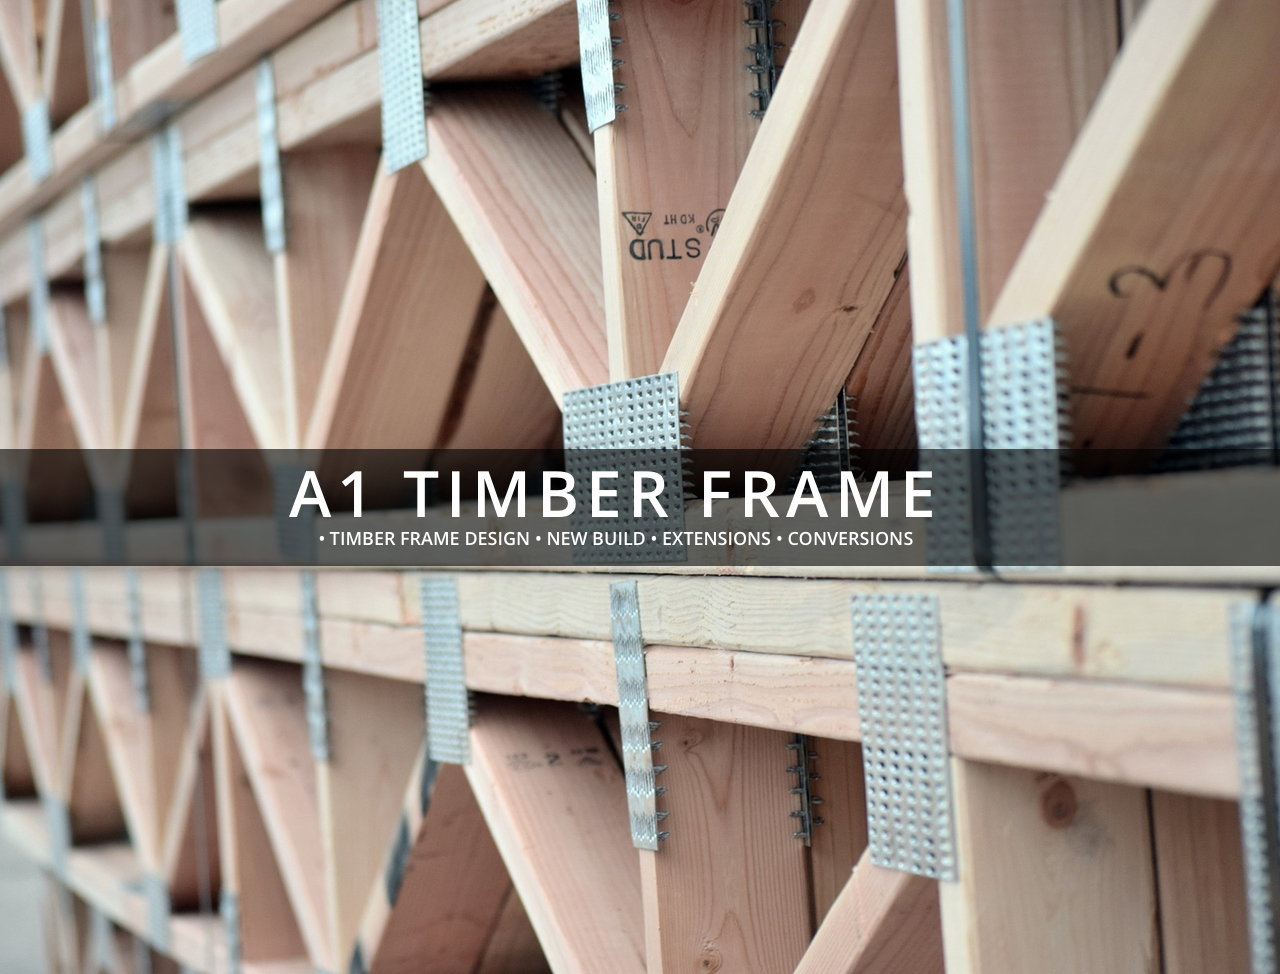 A1 Timber Frame - A1 Timber Frame Limited